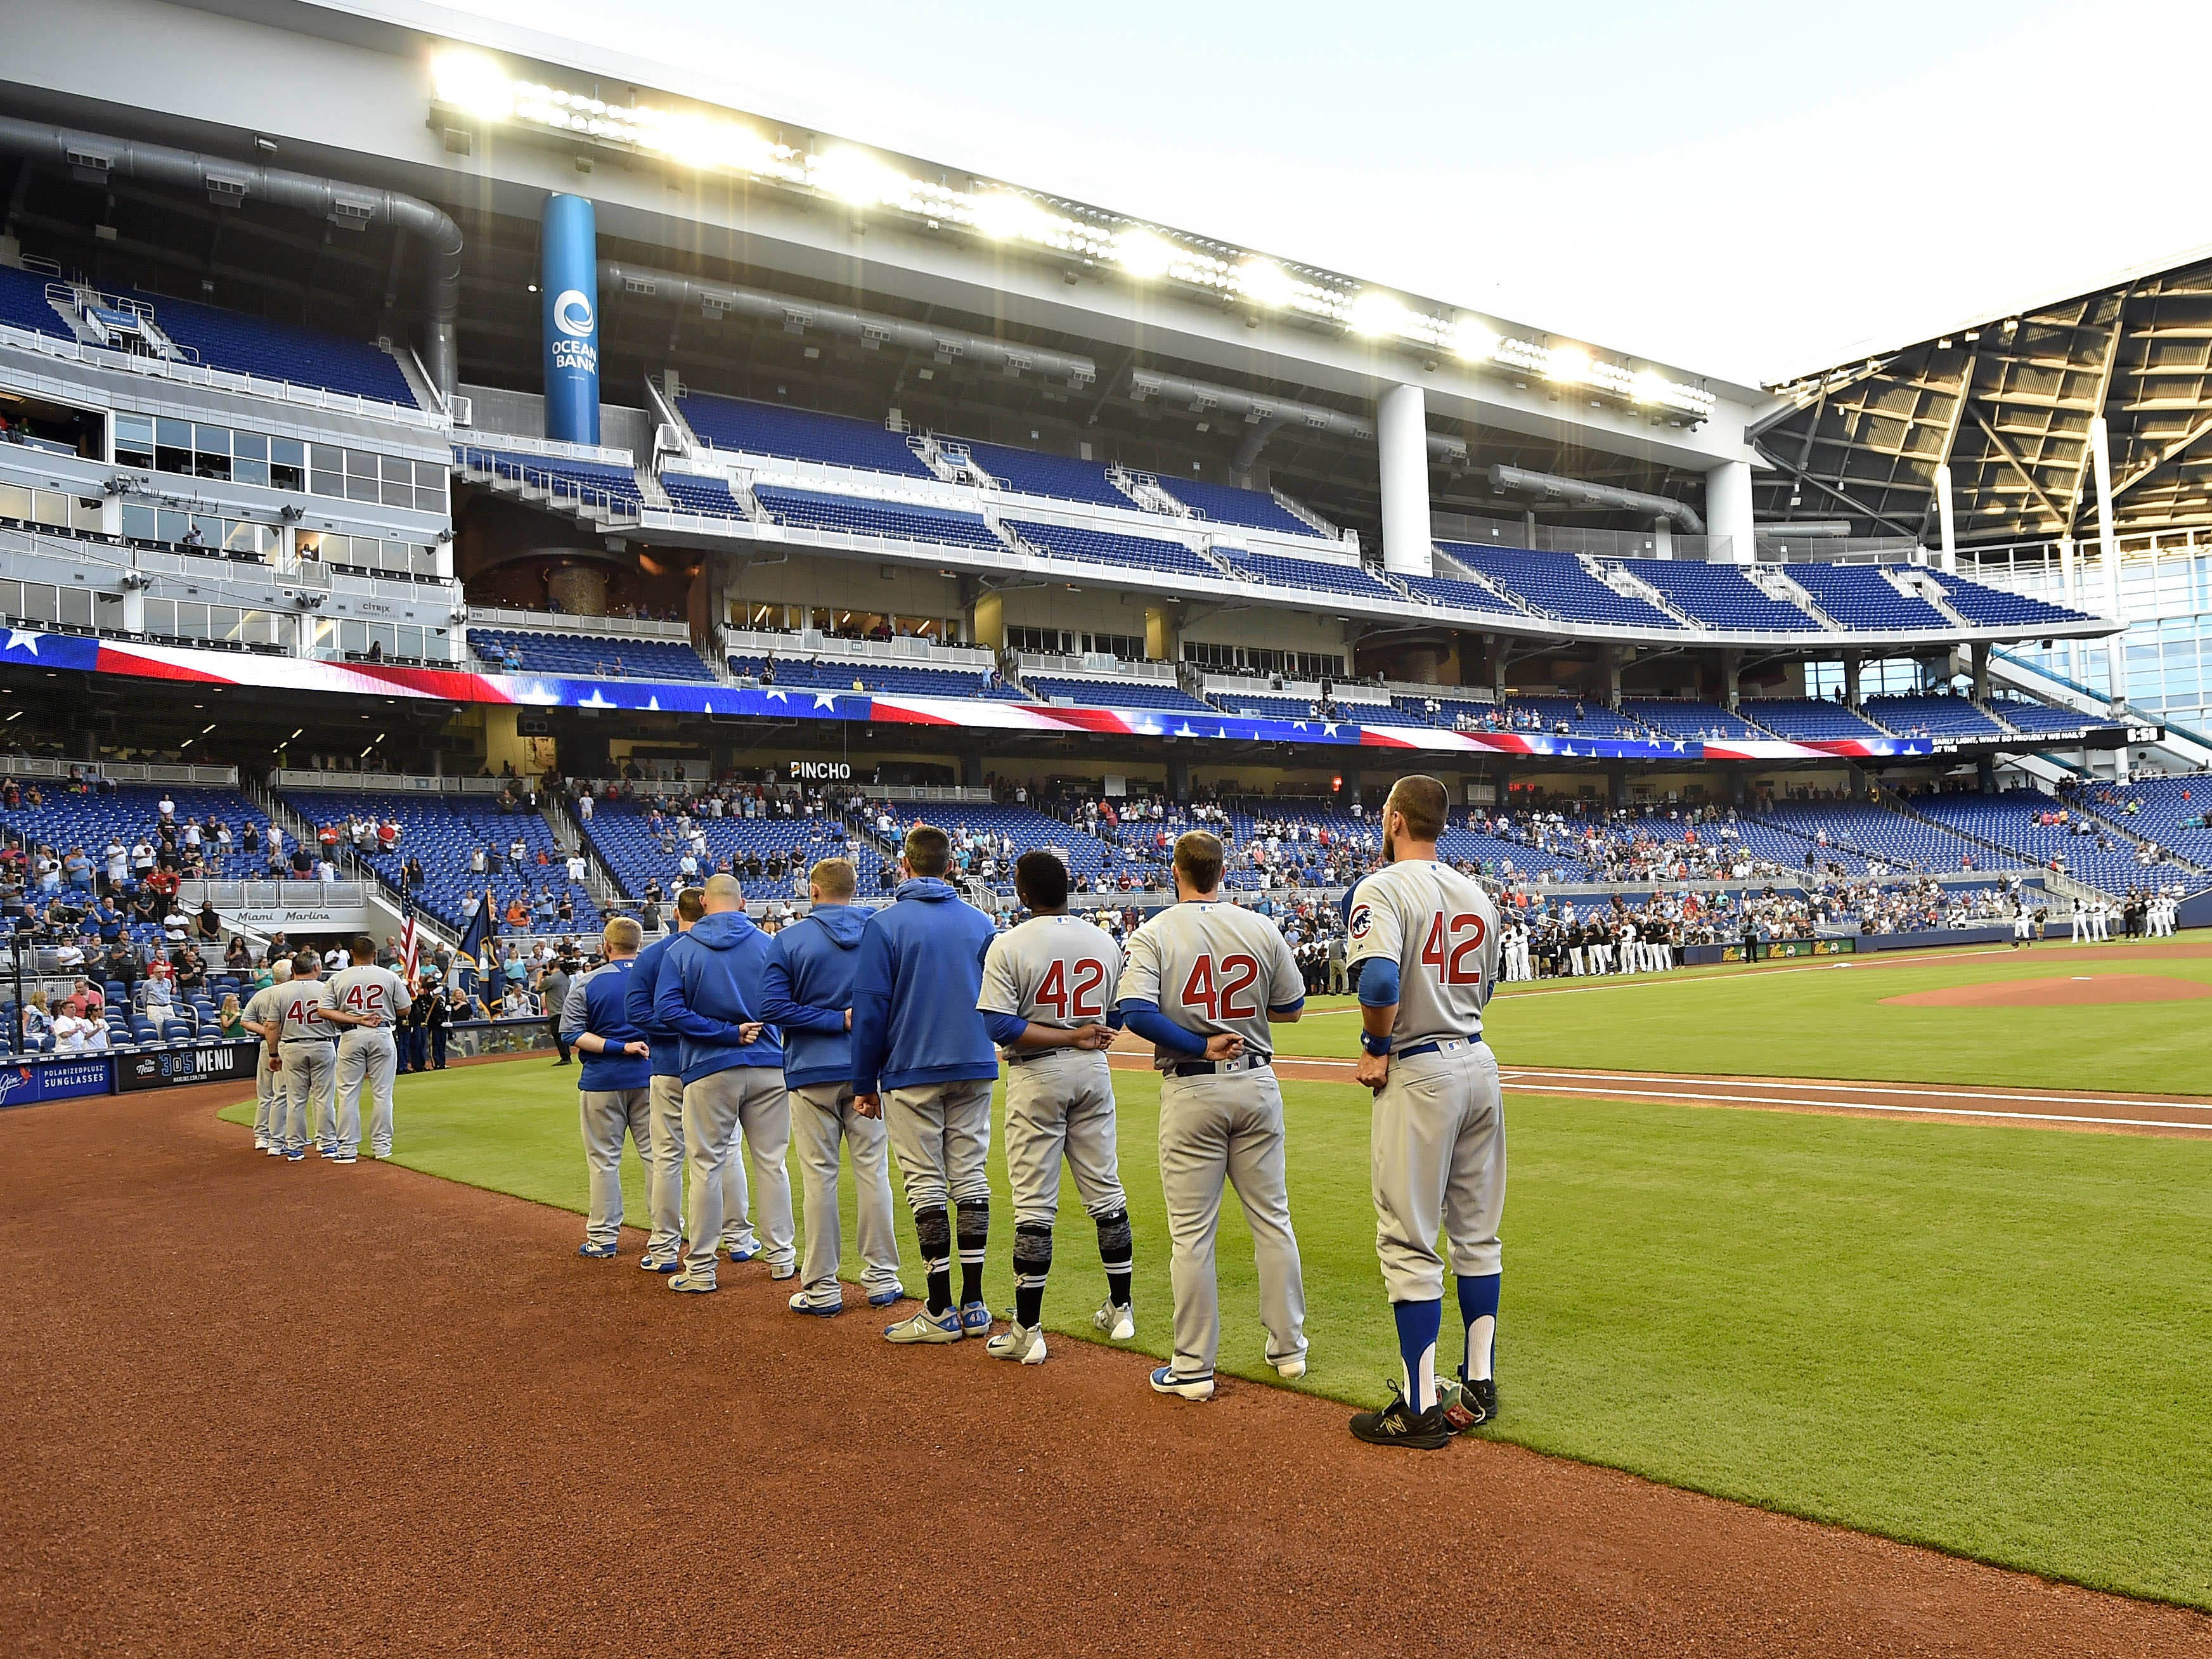 Chicago Cubs players line up during the national anthem wearing the number 42 in honor of Jackie Robinson Day before a game against the Miami Marlins at Marlins Park.